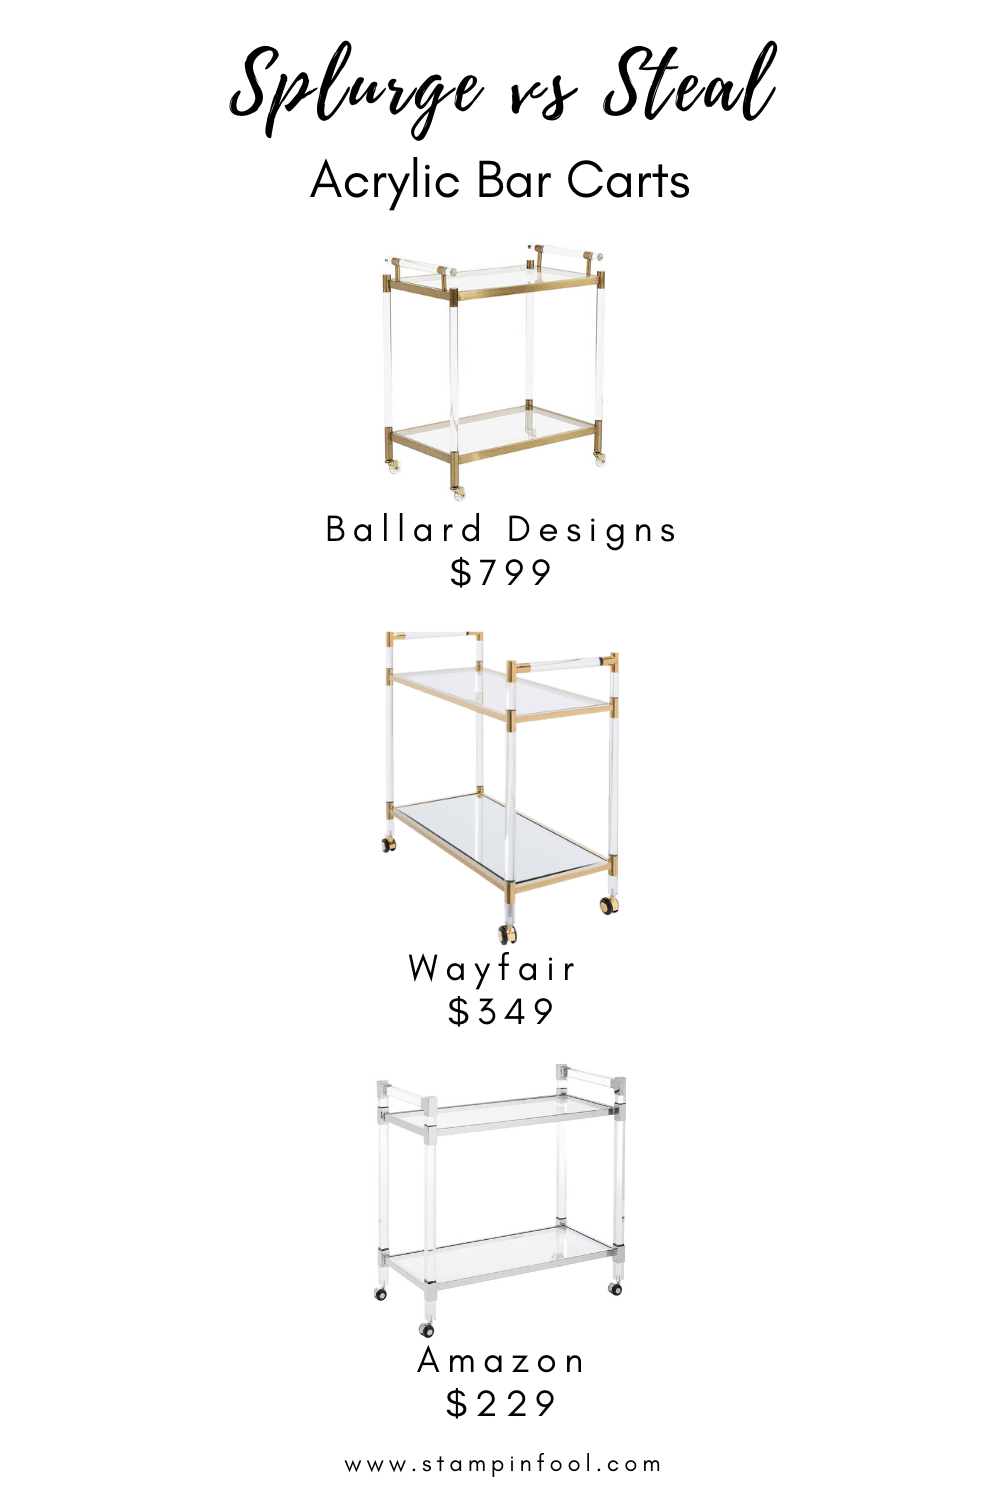 Looking for the perfect gold and acrylic bar cart? Look no further, I've got you covered with these affordable bar carts at every price point.